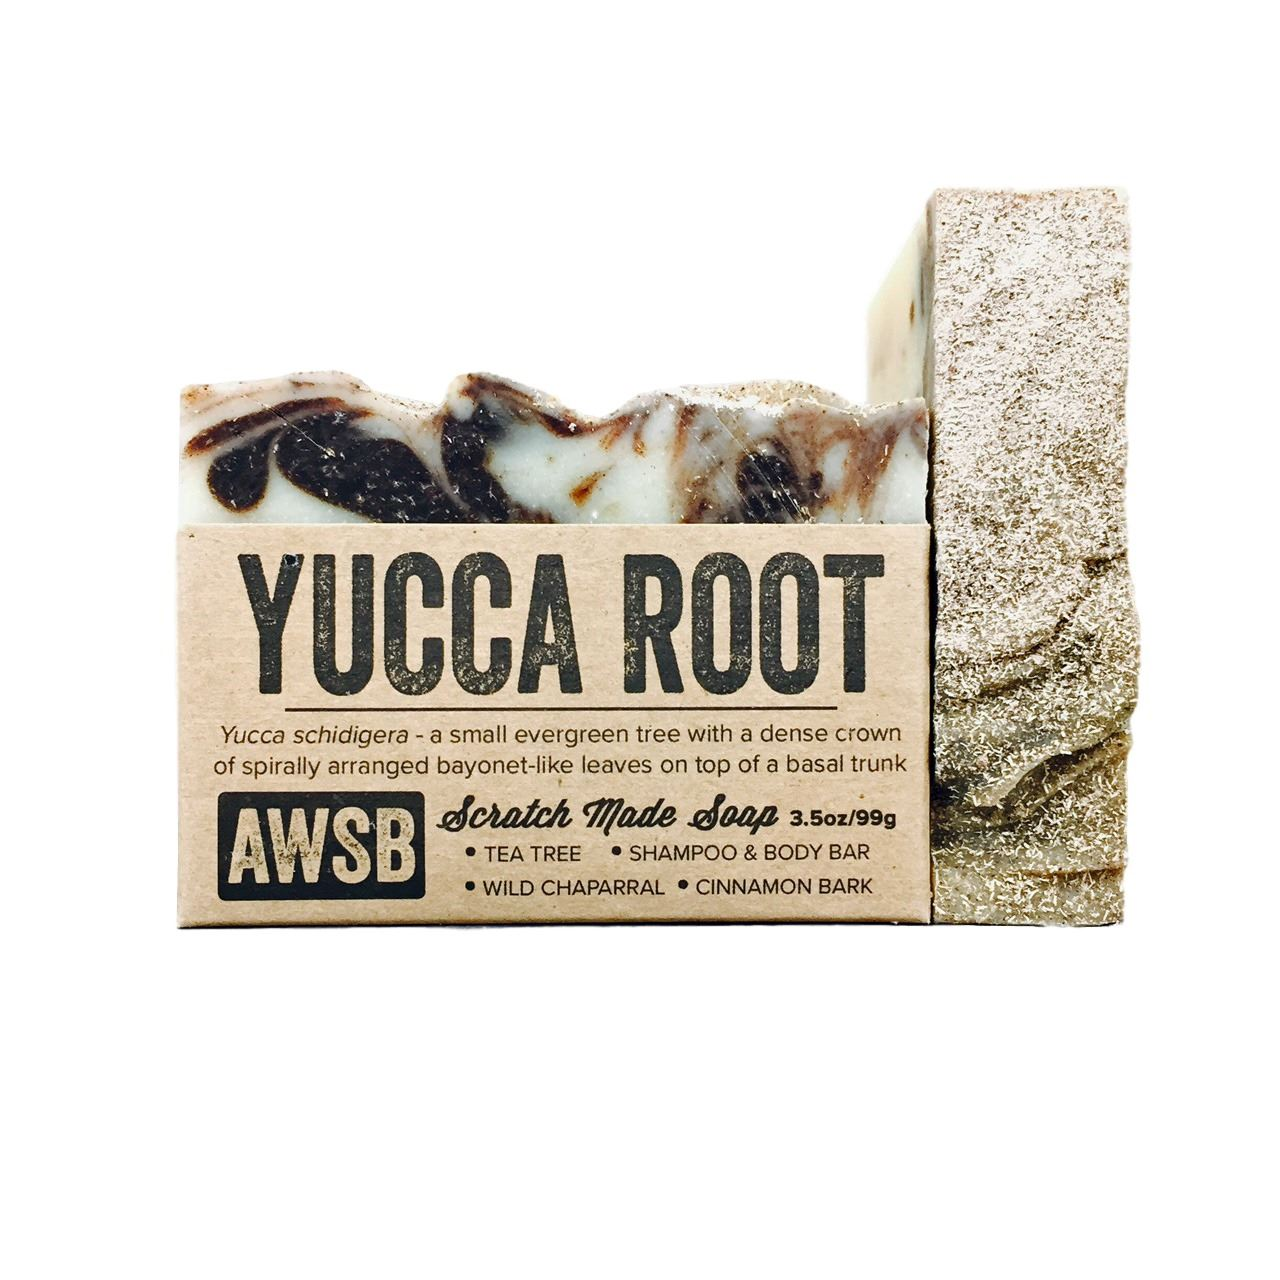 yucca root shampoo & body soap yucca root,tea tree,soap,natural,handmade,organic,vegetable,essential oils,wild,deodorizing,exfoliating,shampoo,shampoo bar,medicinal,solid shampoo,natural hair rinse